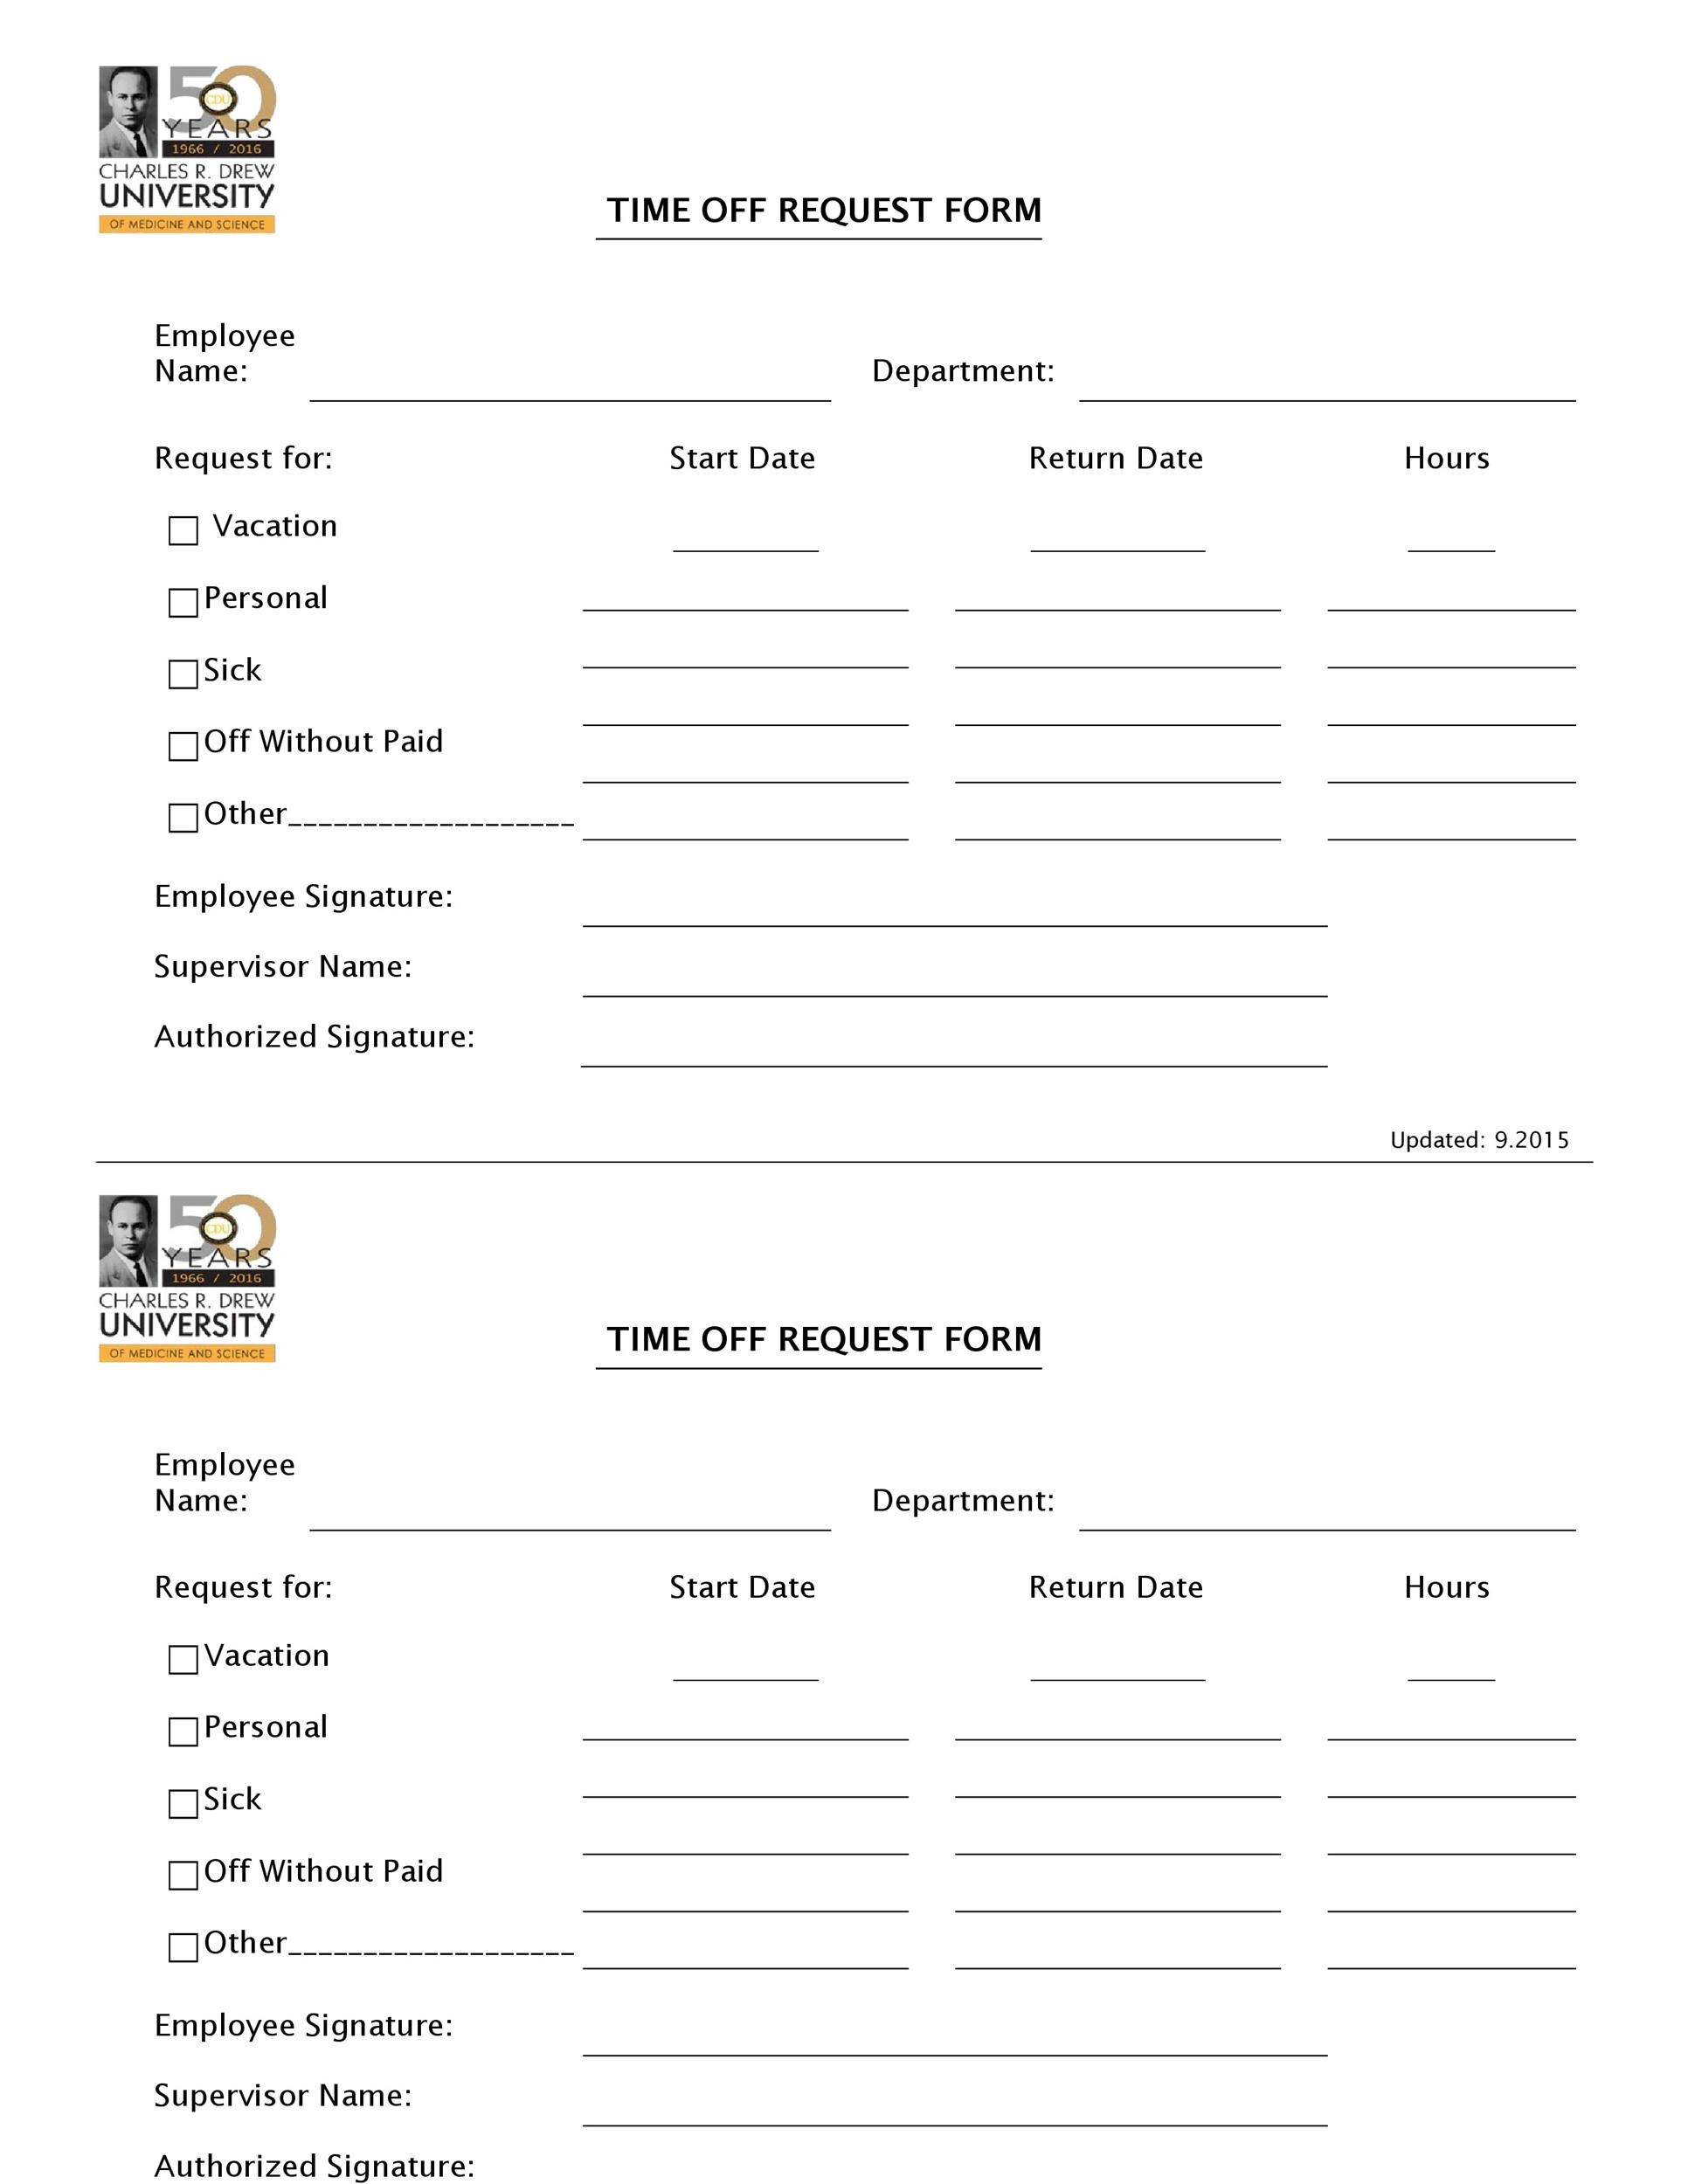 Free time off request form template 32